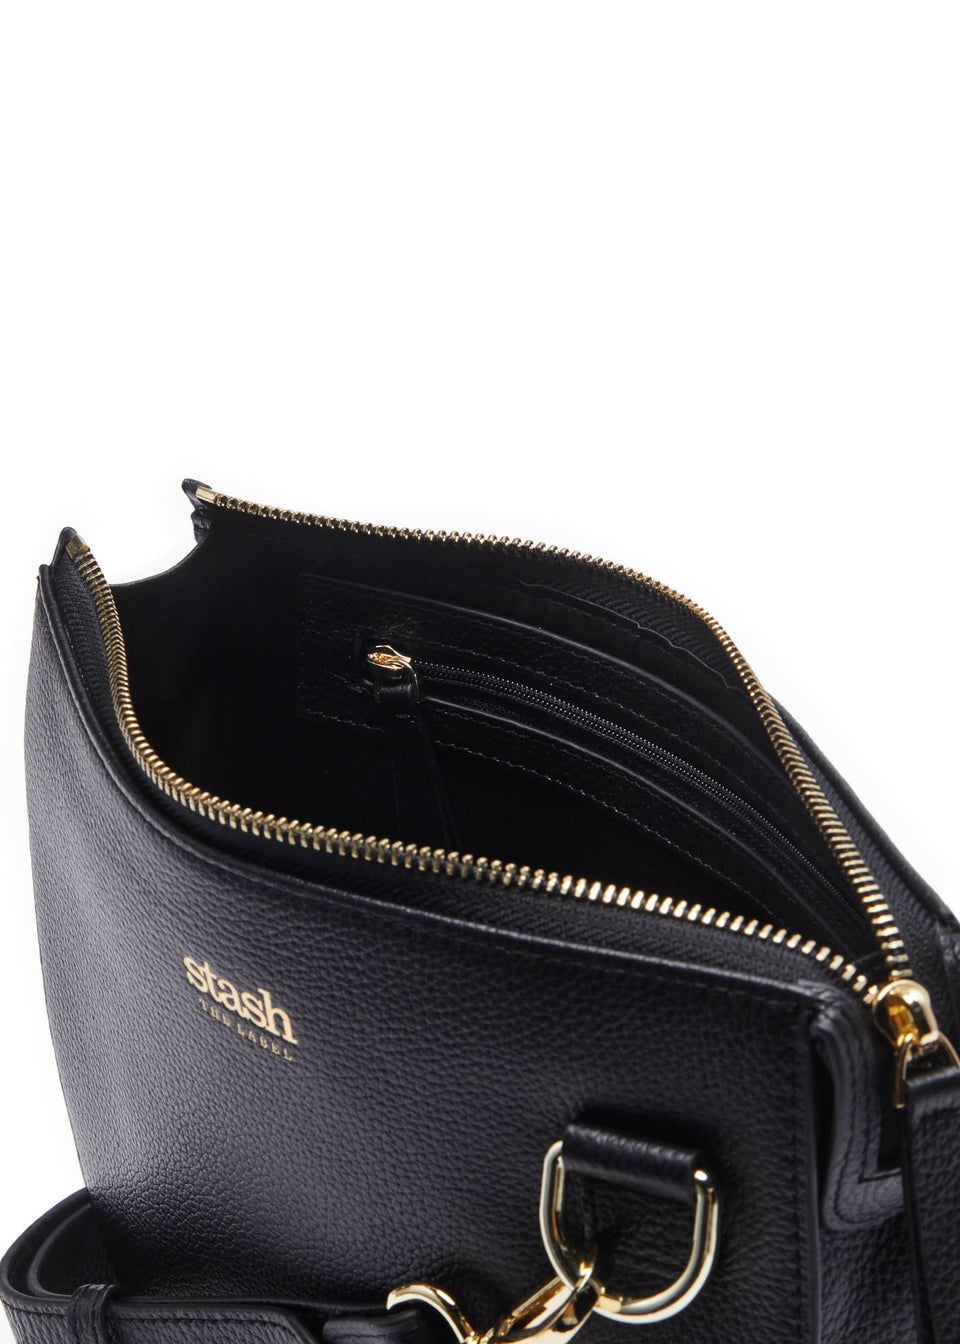 Half-moon Crossbody (Gold embossed logo)